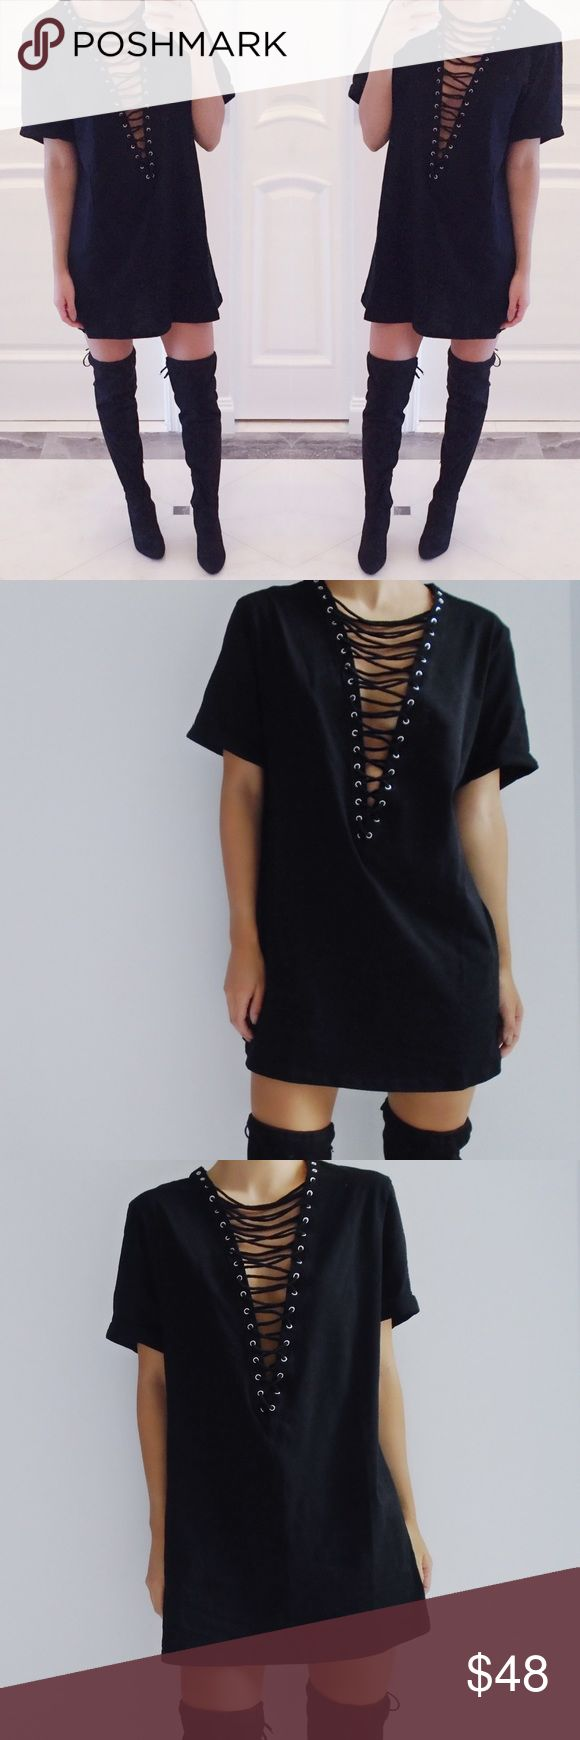 Black t shirt v shape - Restocked Kendall Lace Up V Neck Shirt Dress Short Sleeve Lace Up